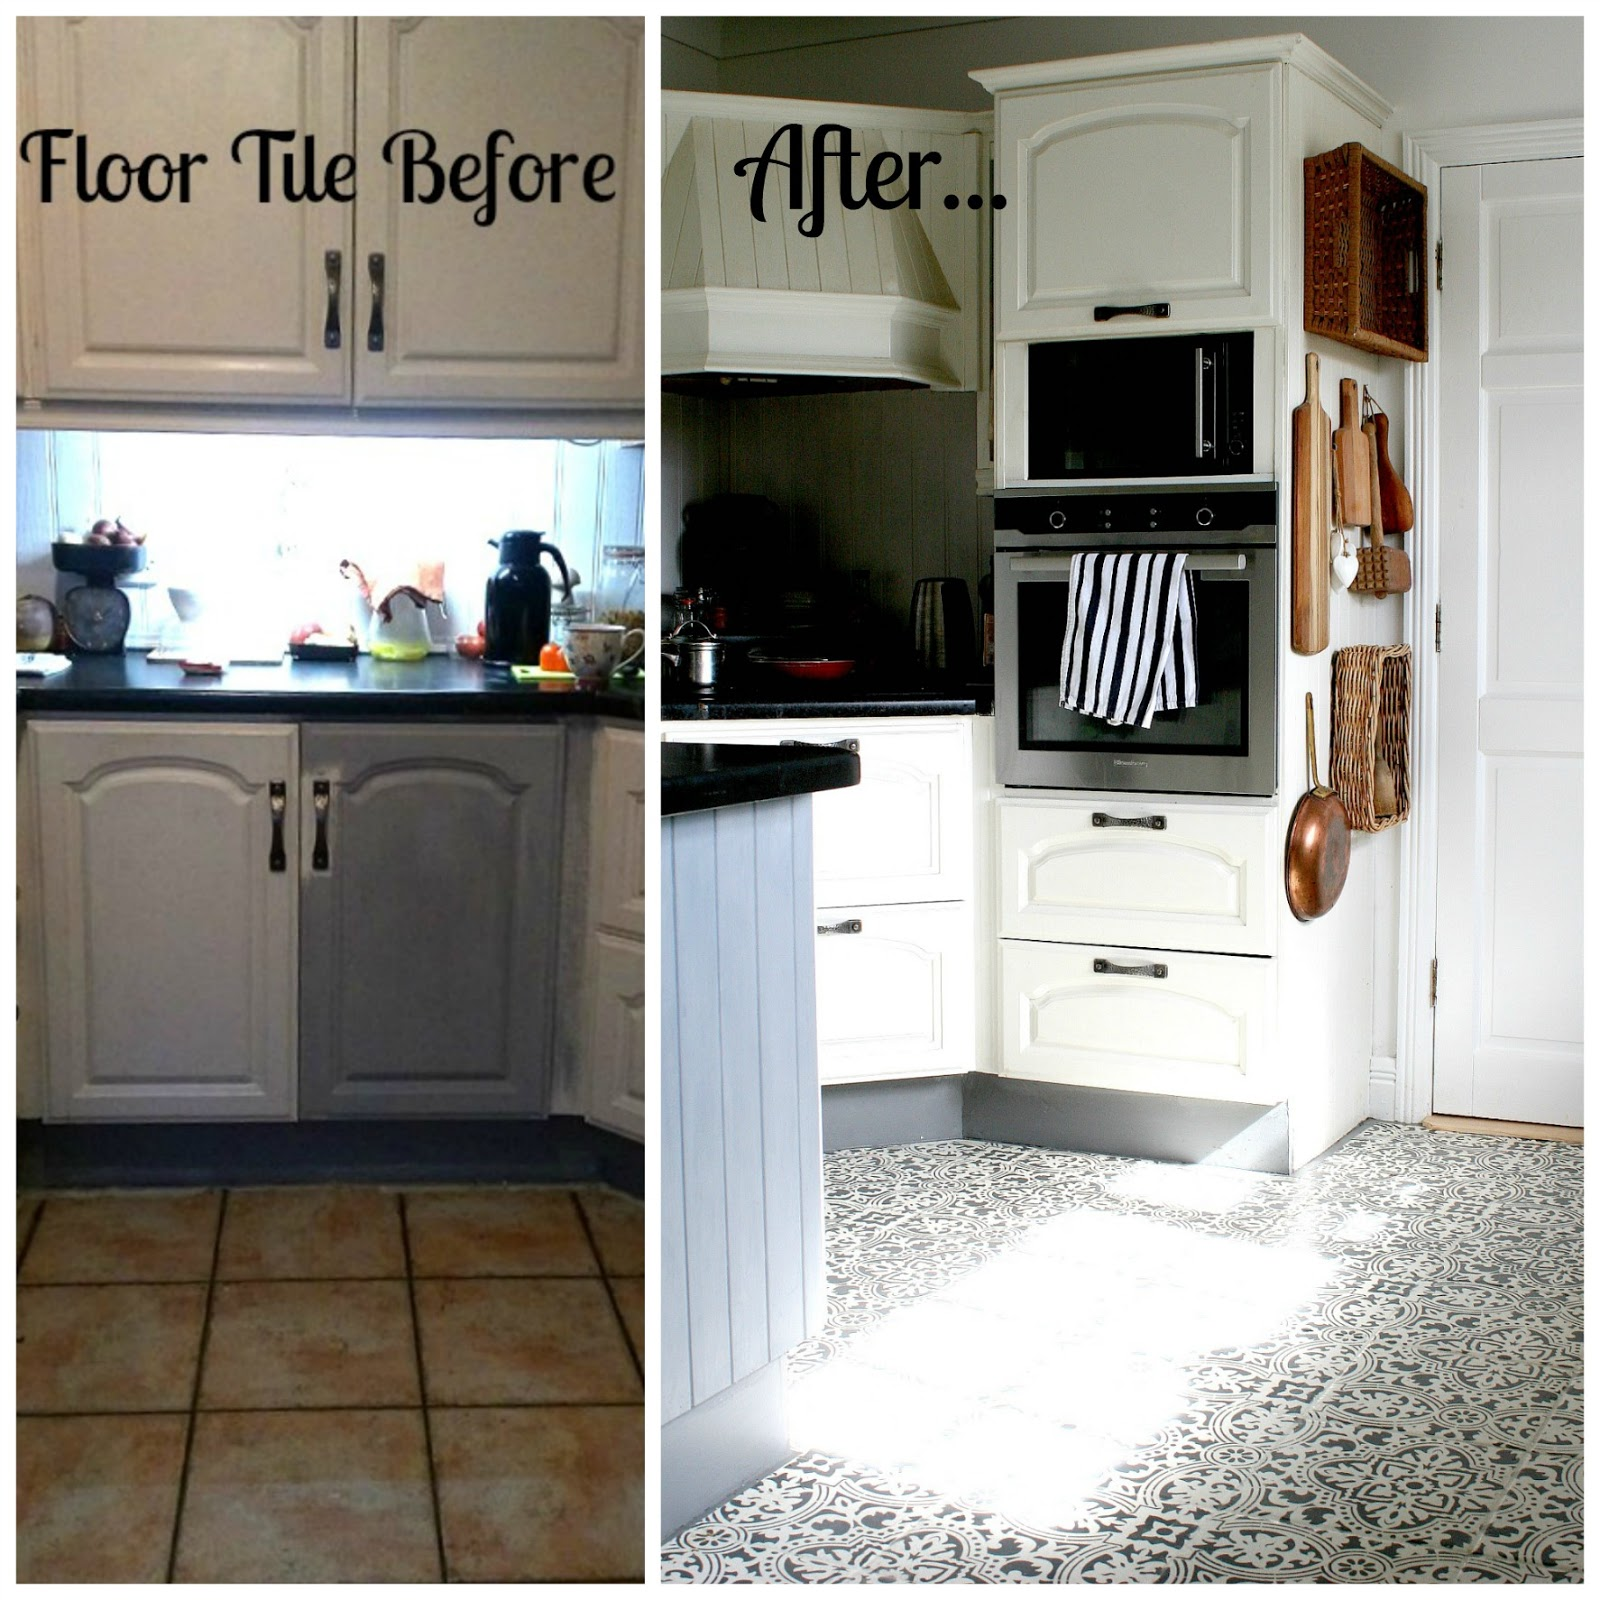 How To Stencil Kitchen Floor Tile & How It Held Up One